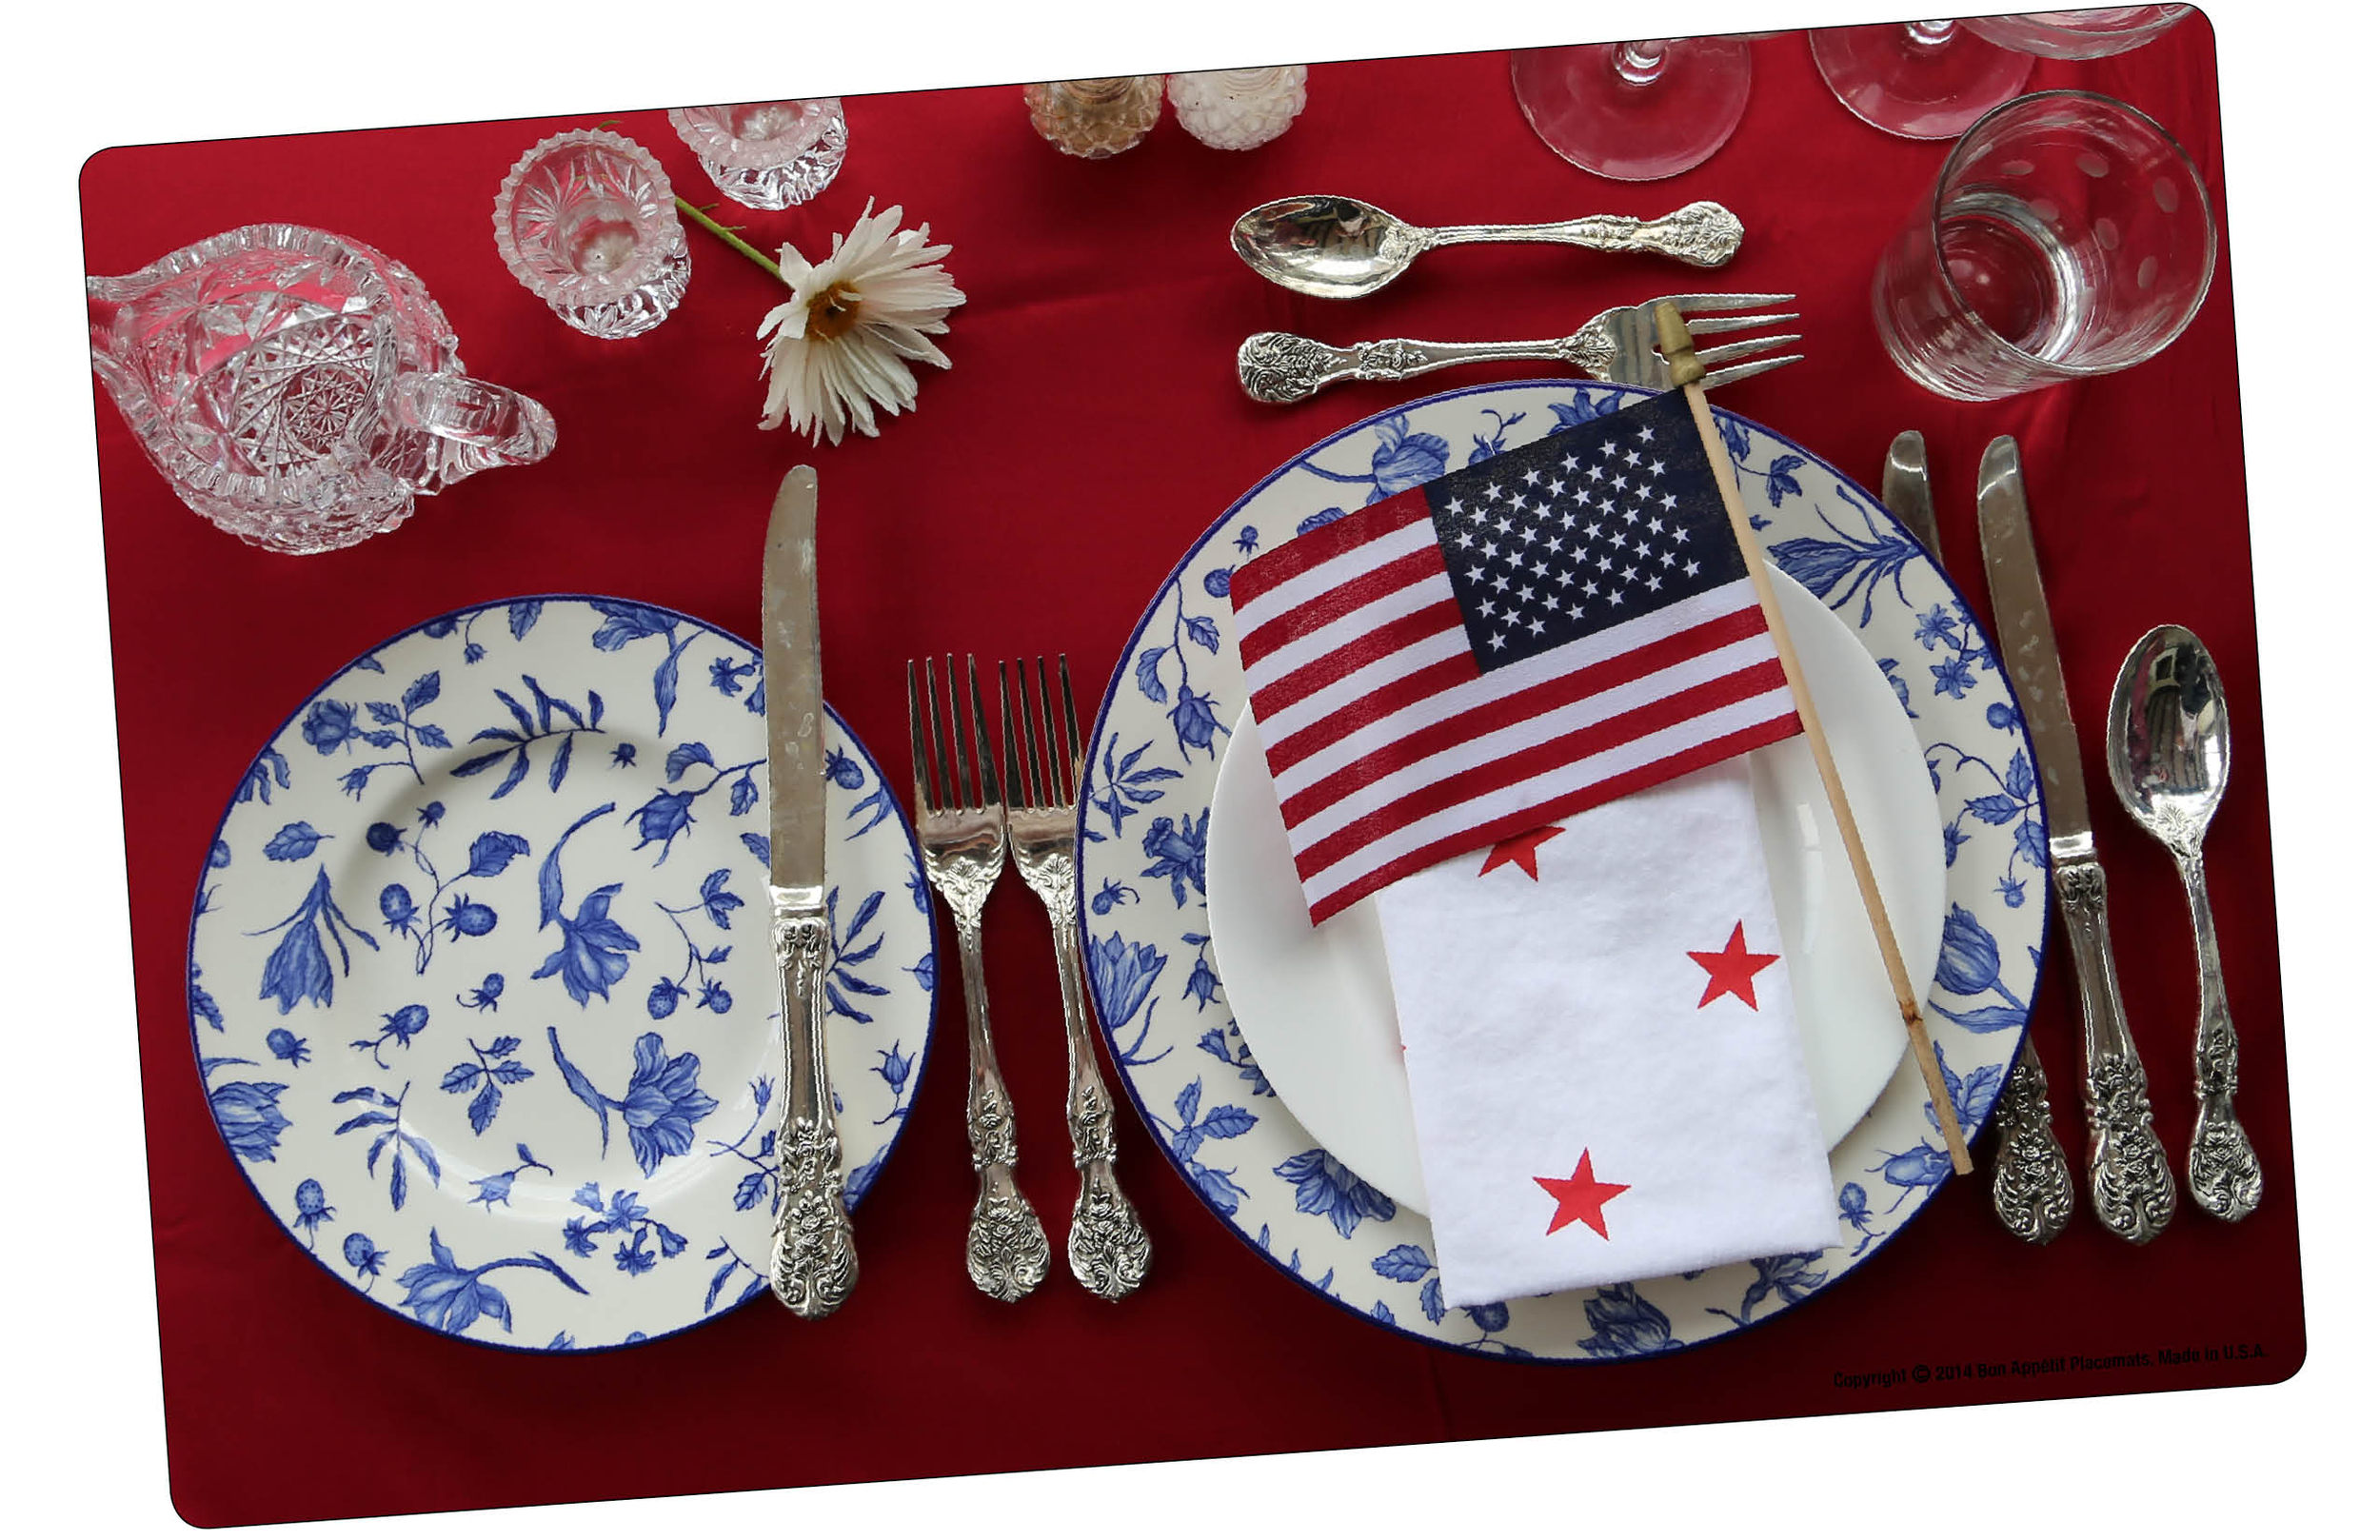 Bon Appetit Placemat Formal July 4.jpg